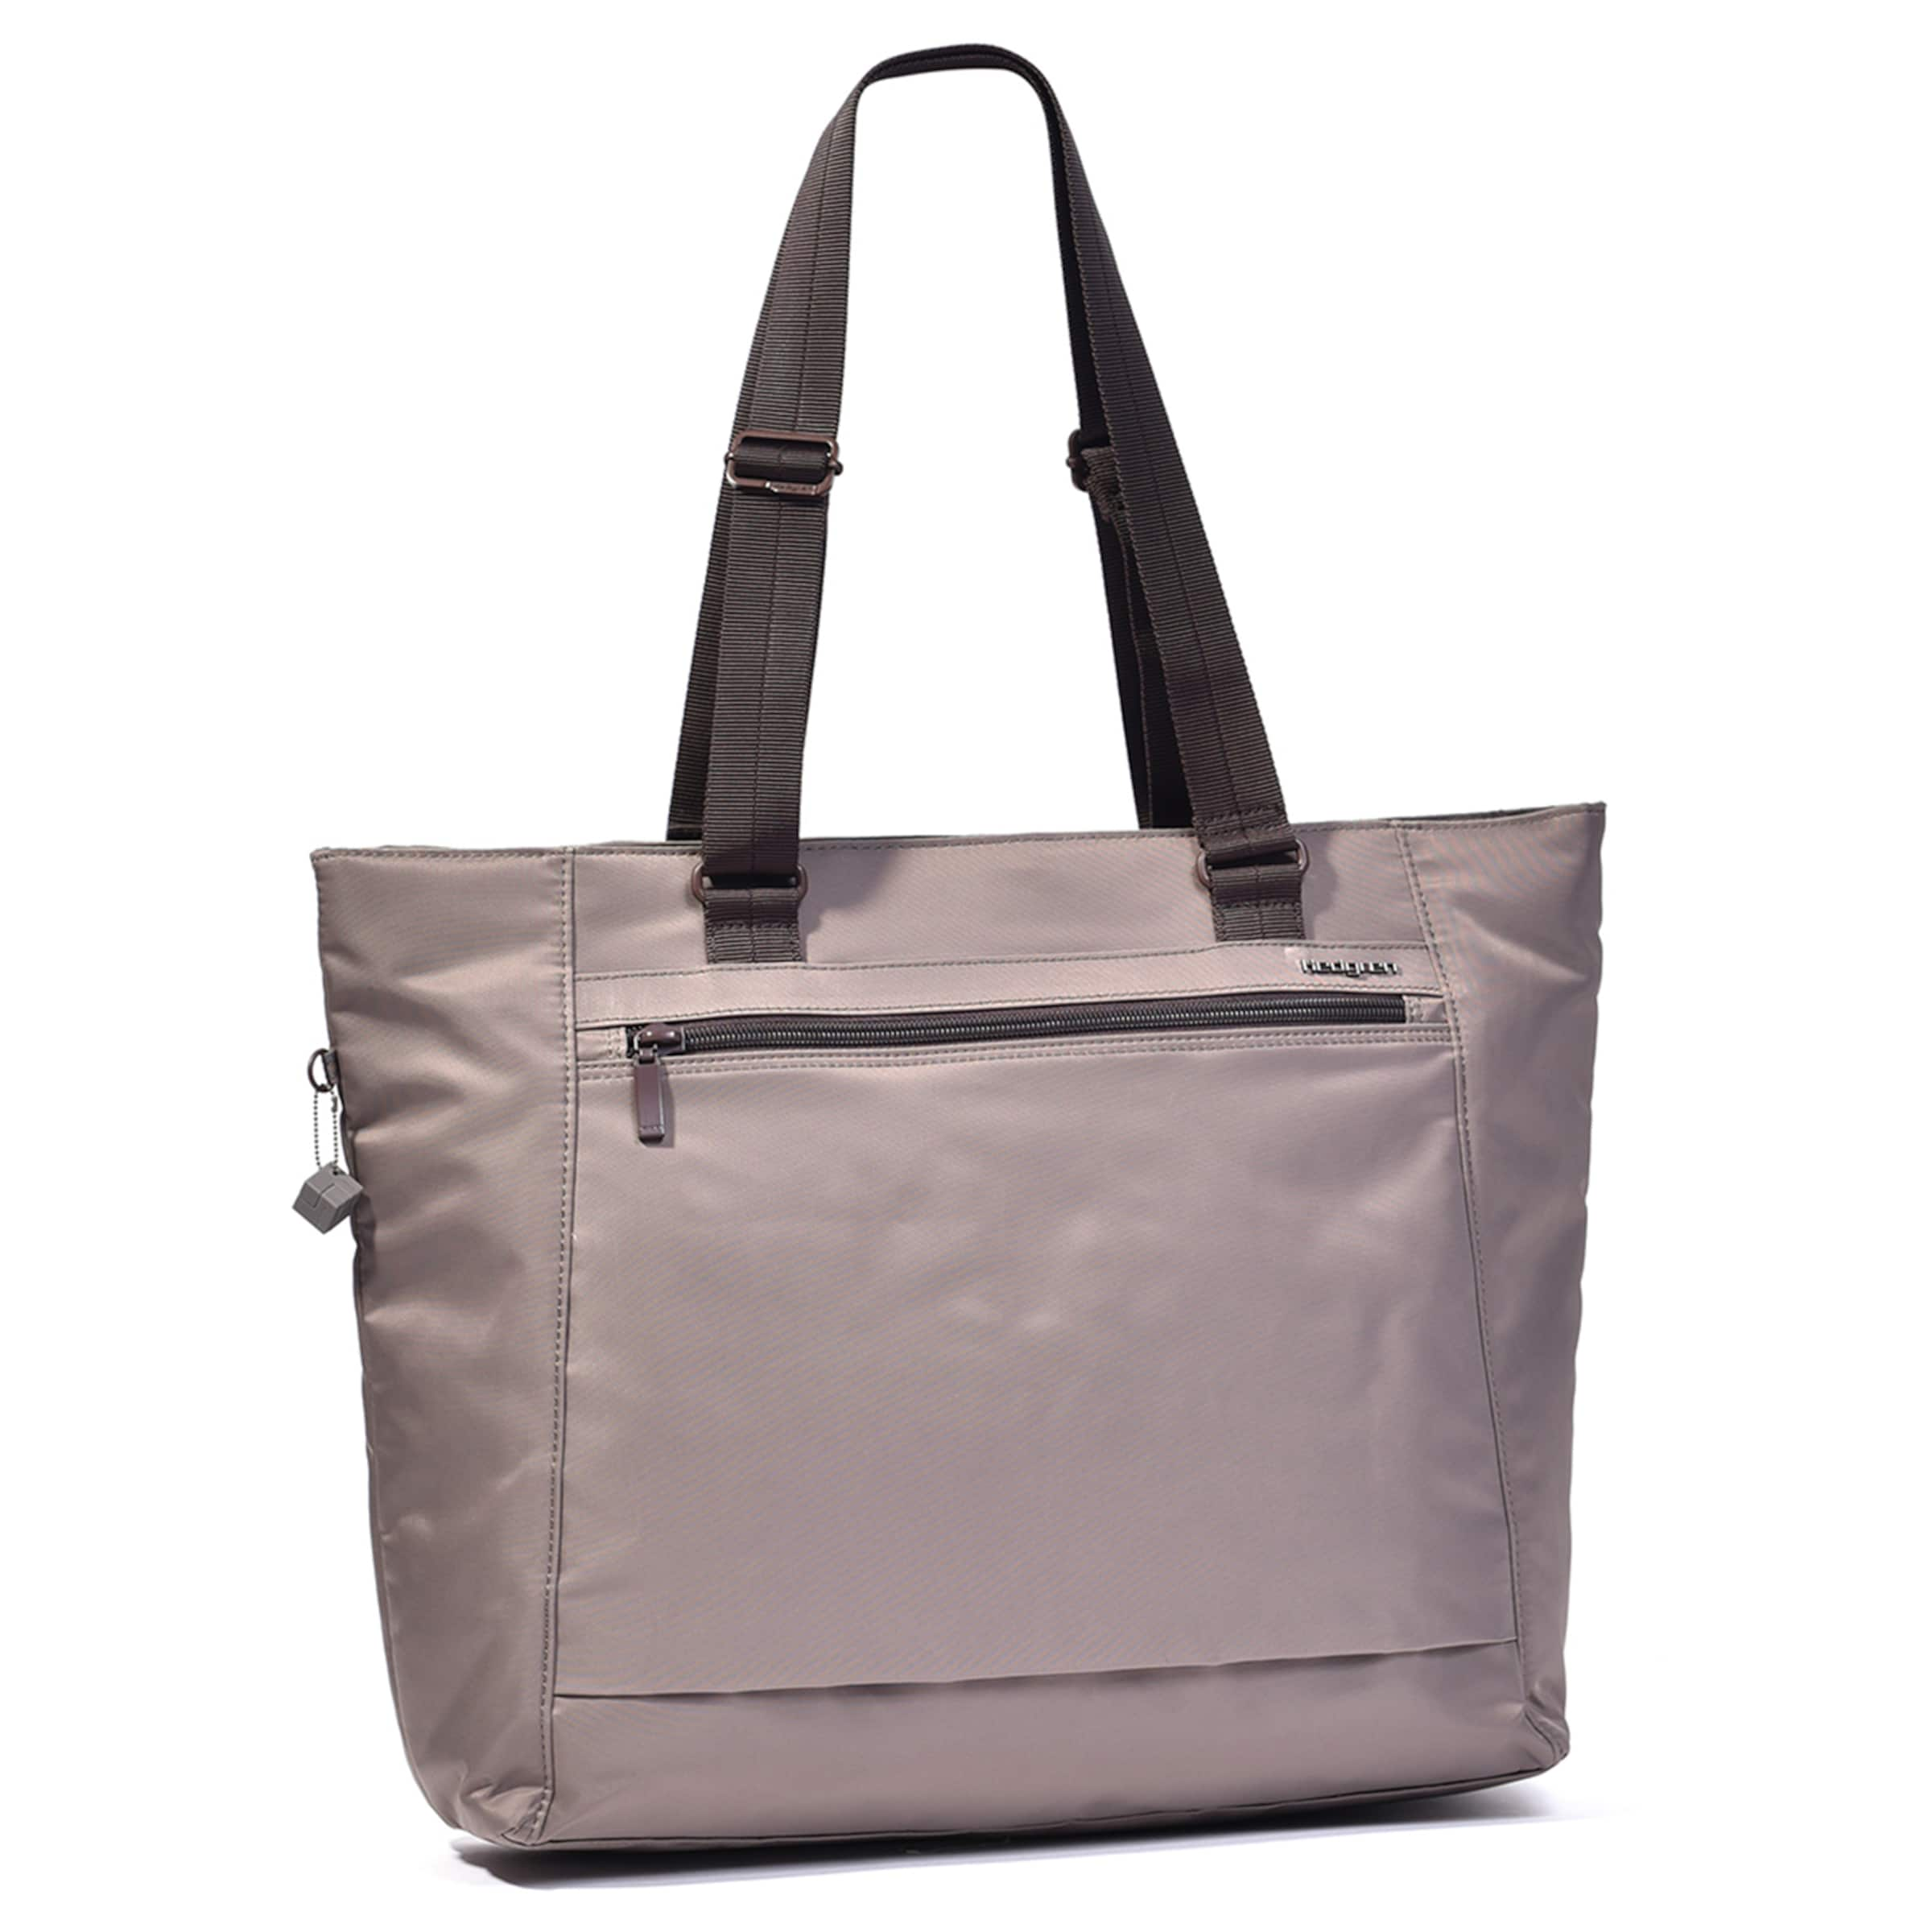 Hedgren Hedgren In Hedgren Shopper In Beige Shopper Shopper Beige 'elvira' 'elvira' rCxoedWB